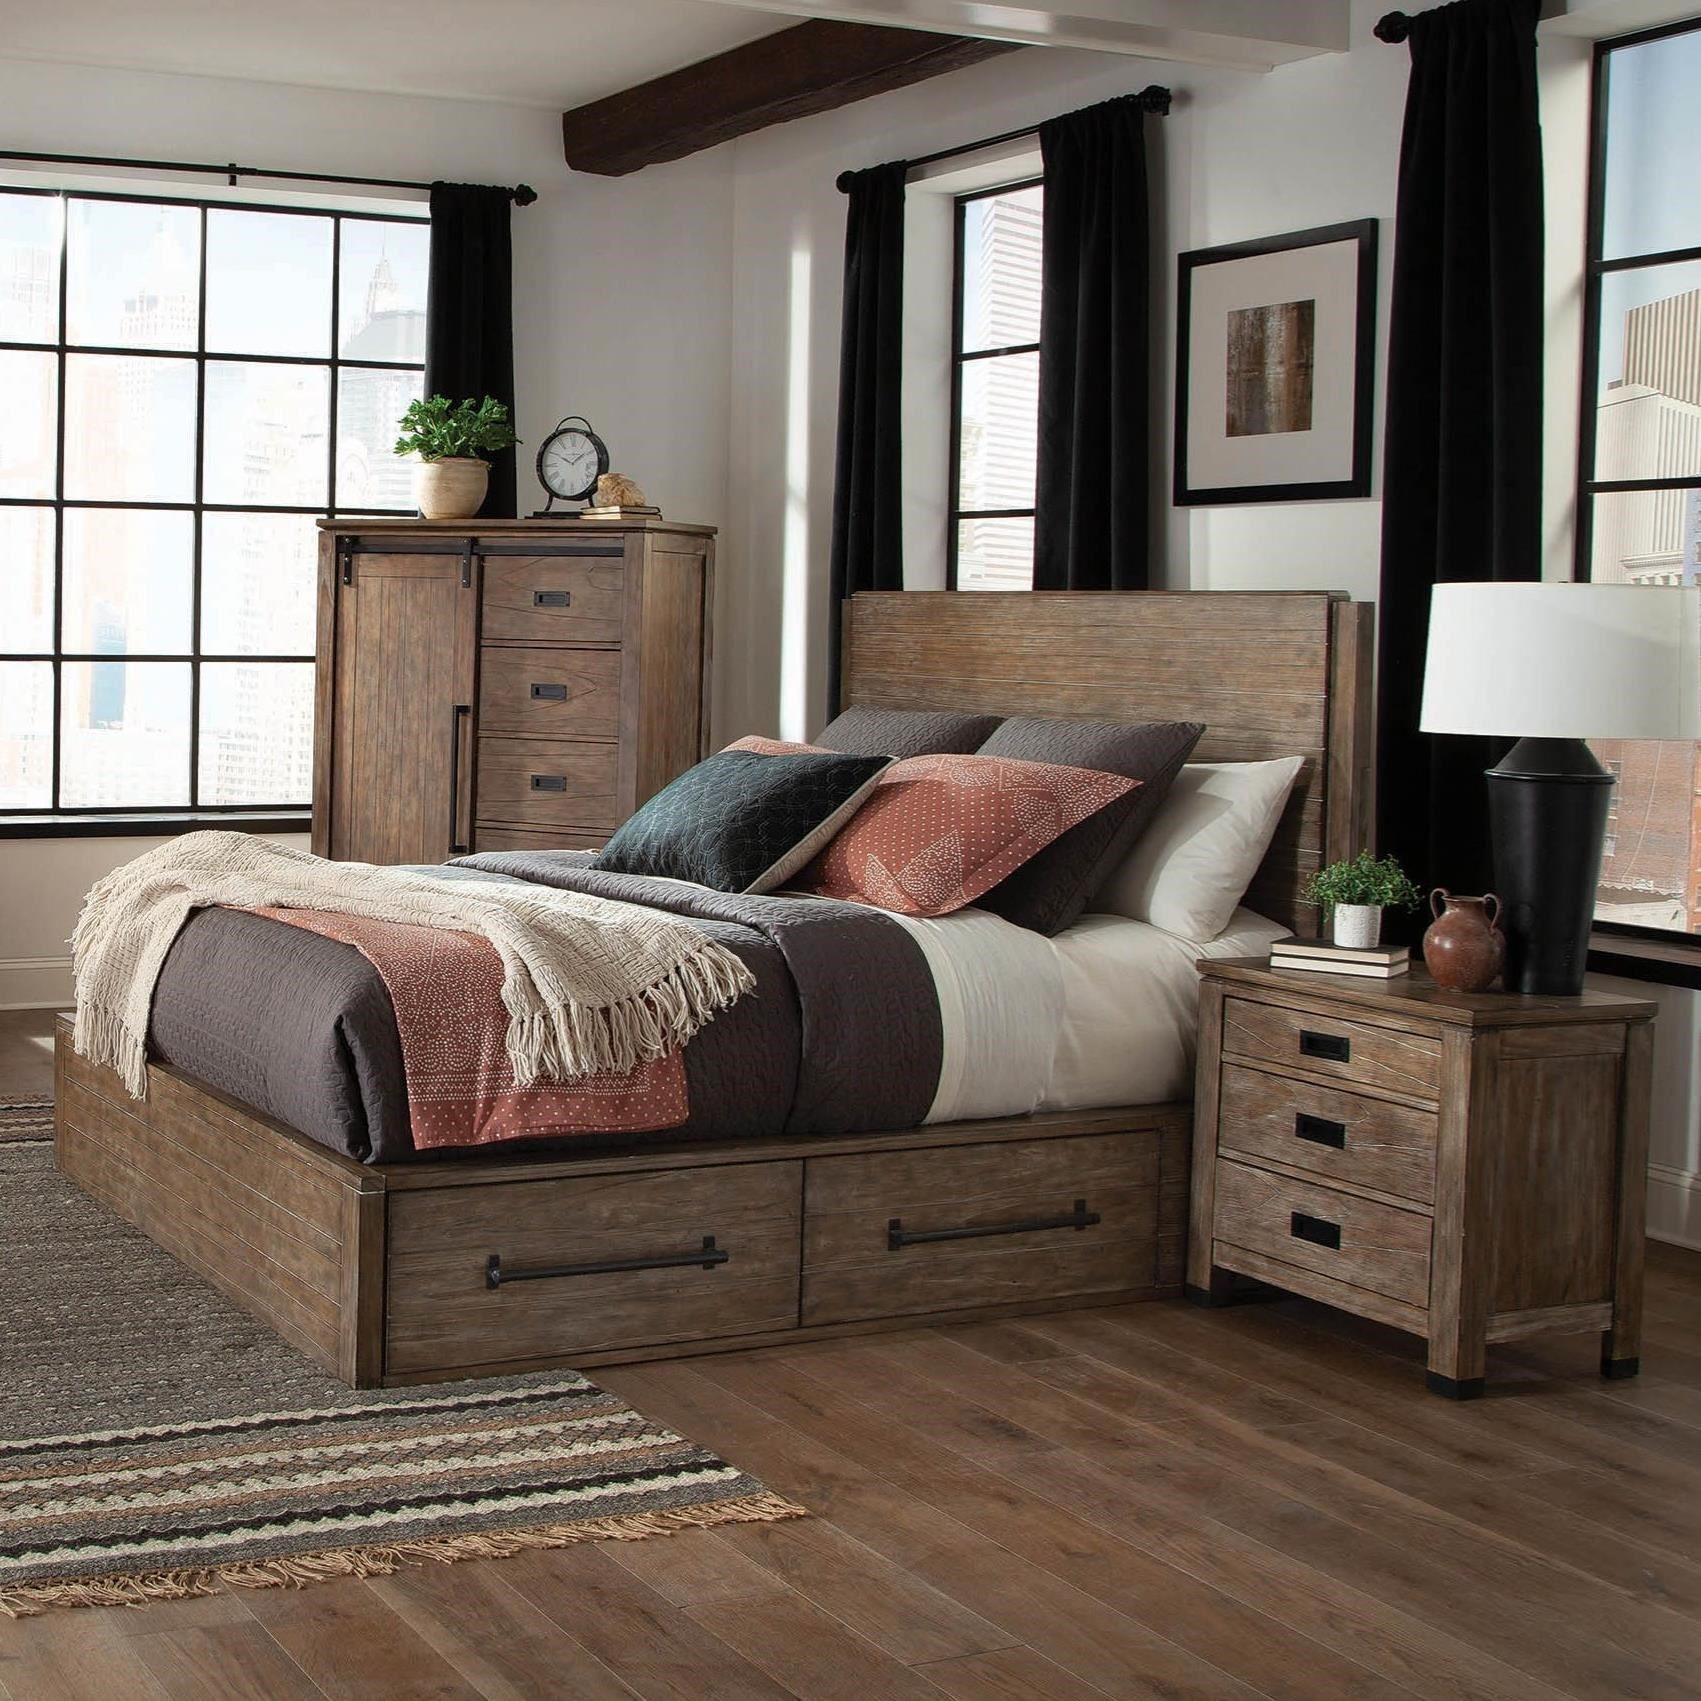 Coaster meester modern rustic queen bed with storage drawers